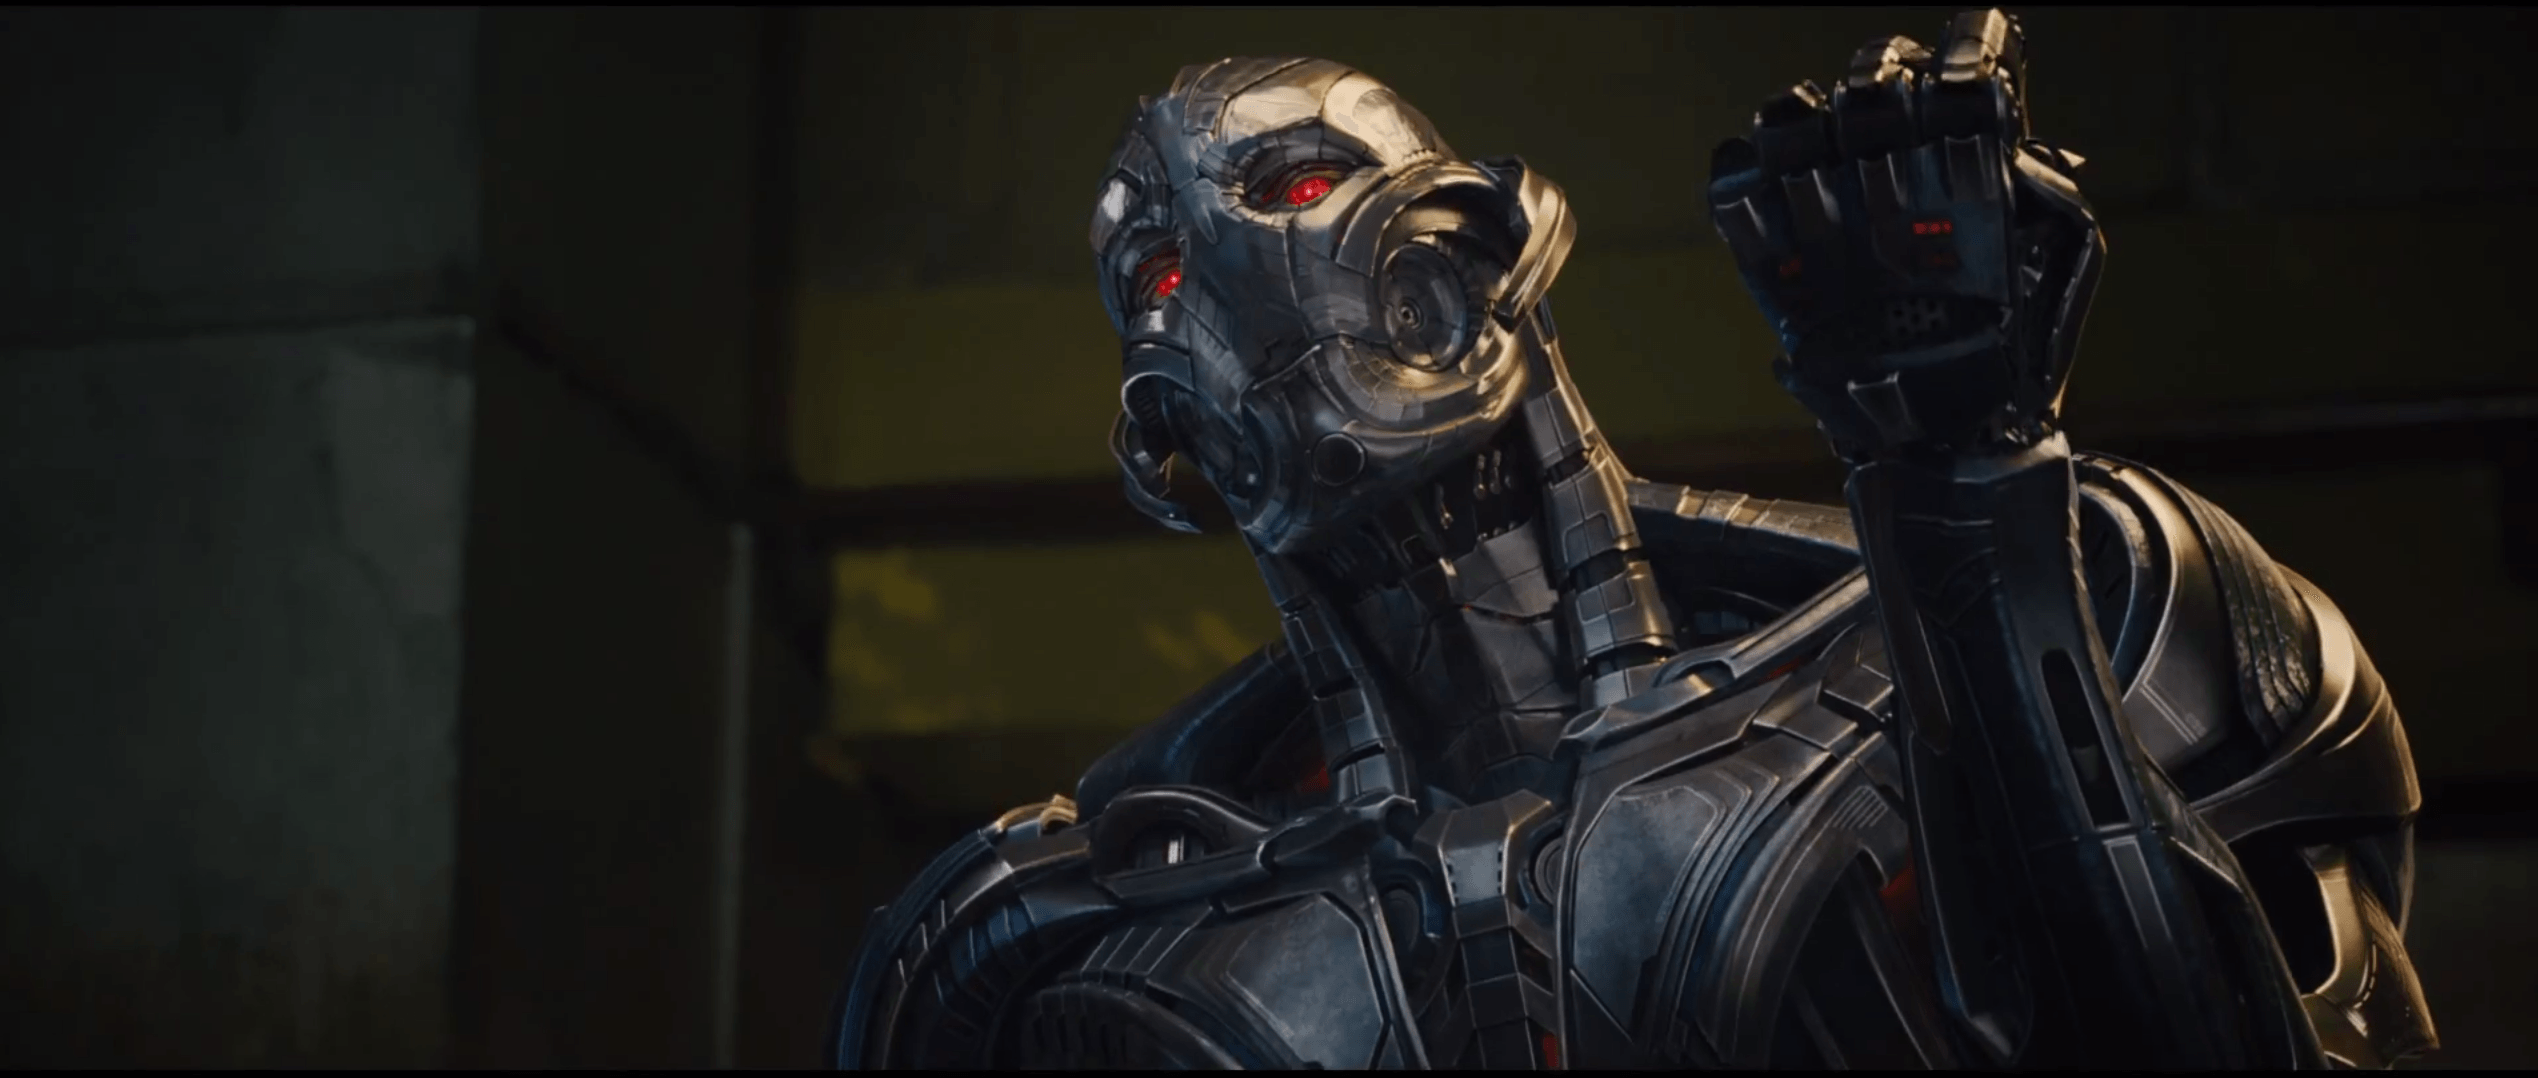 Avengers-Age-of-Ultron-Ultron